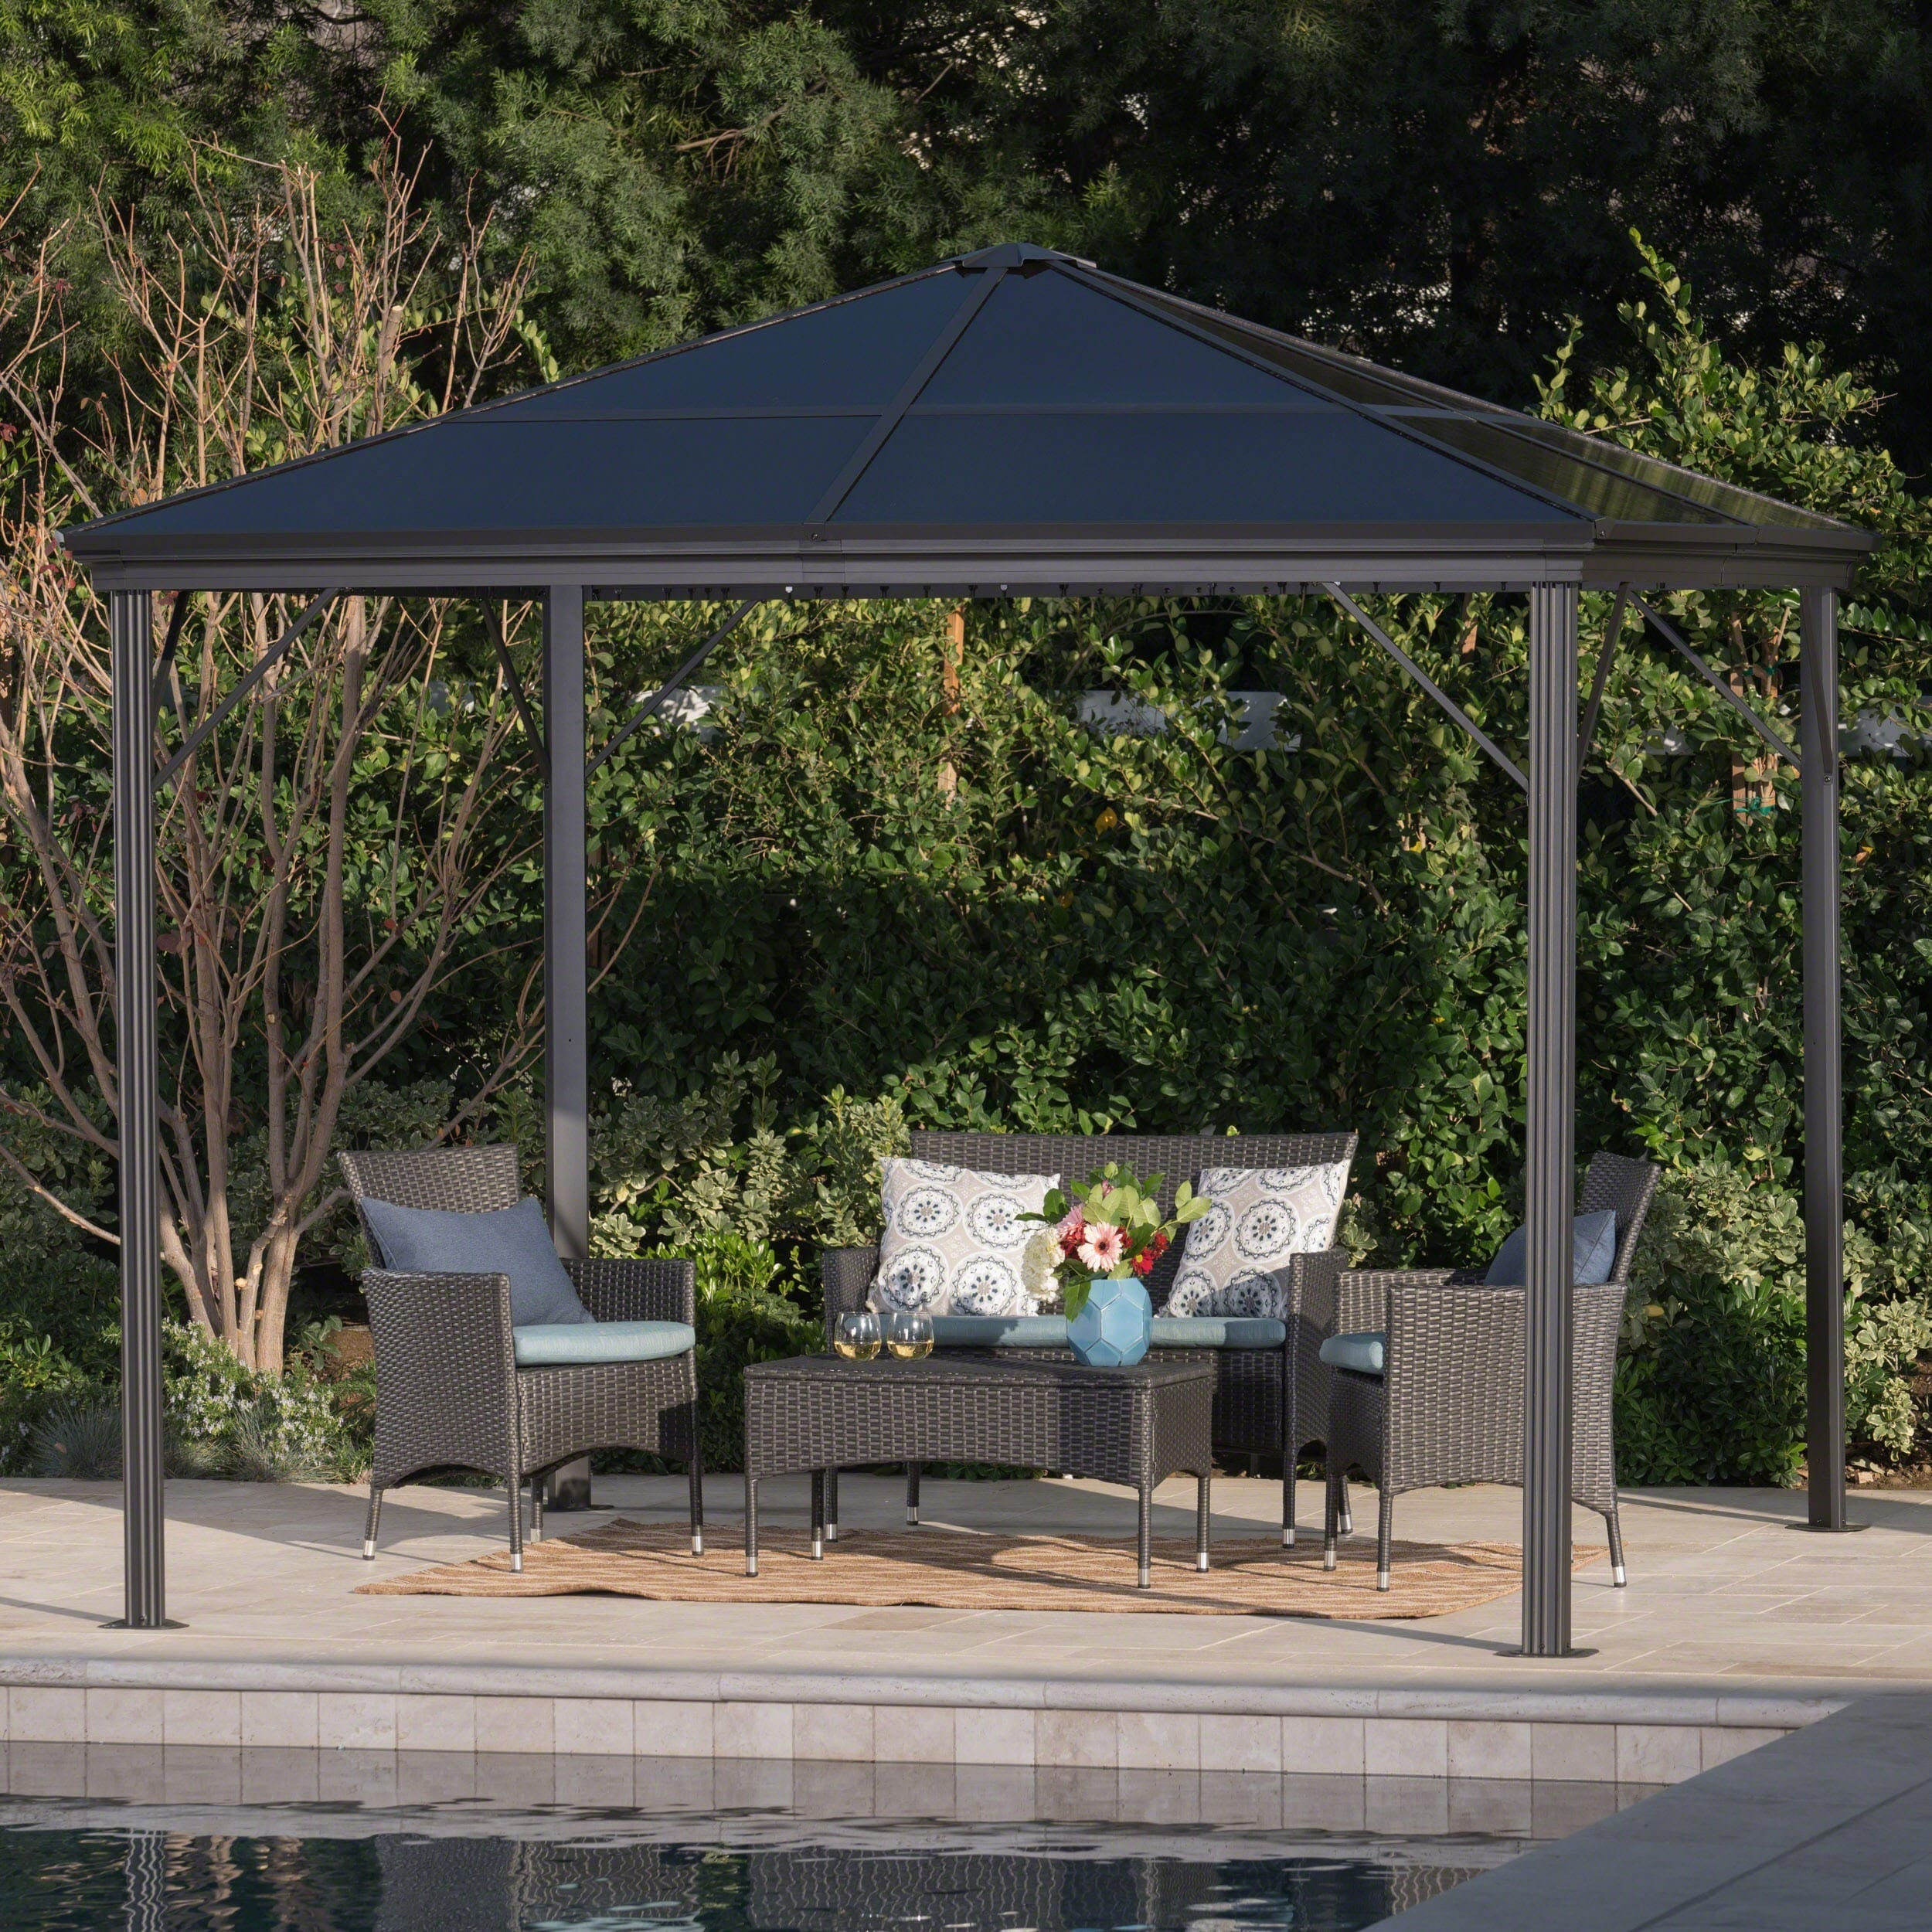 Bailey outdoor 10 ft aluminum gazebo with hardtop by christopher knight home